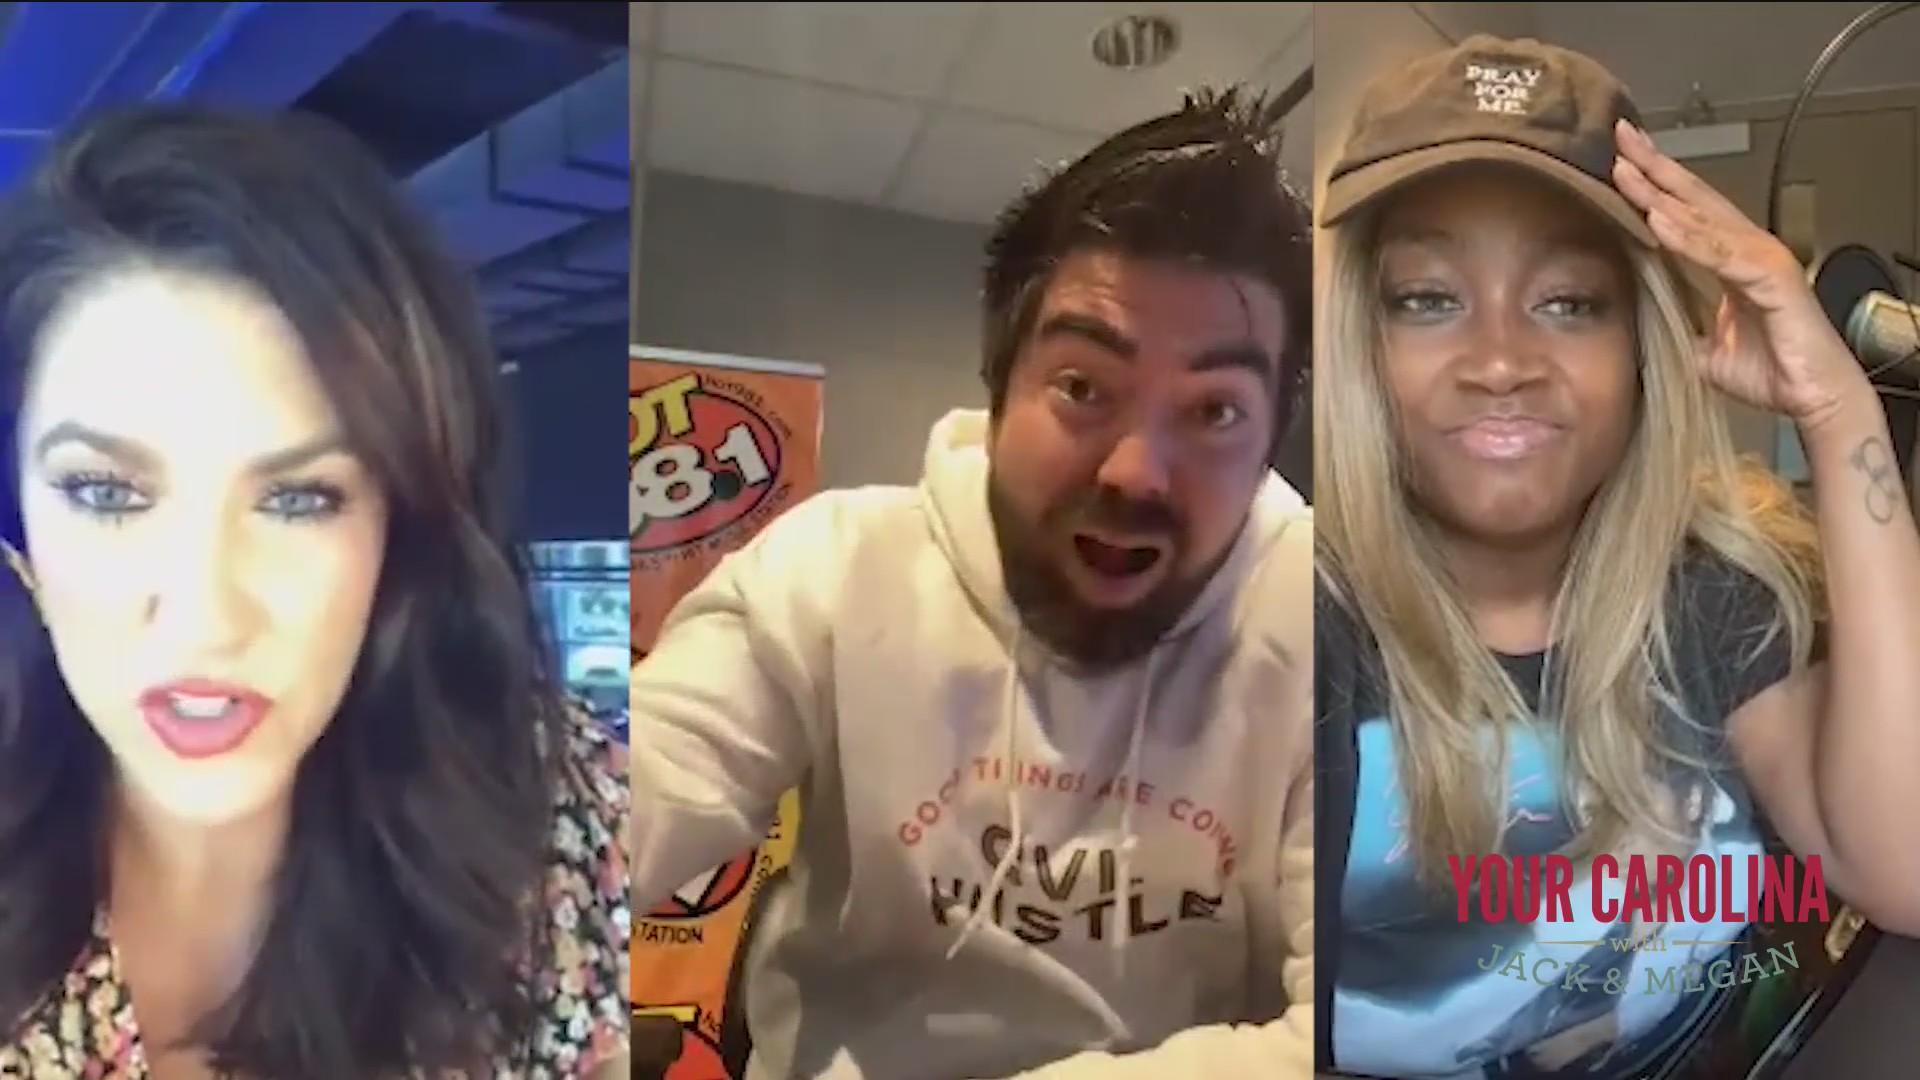 What Barbie T. and Dex at HOT 98.1 Are Up To? Megan Finds Out!